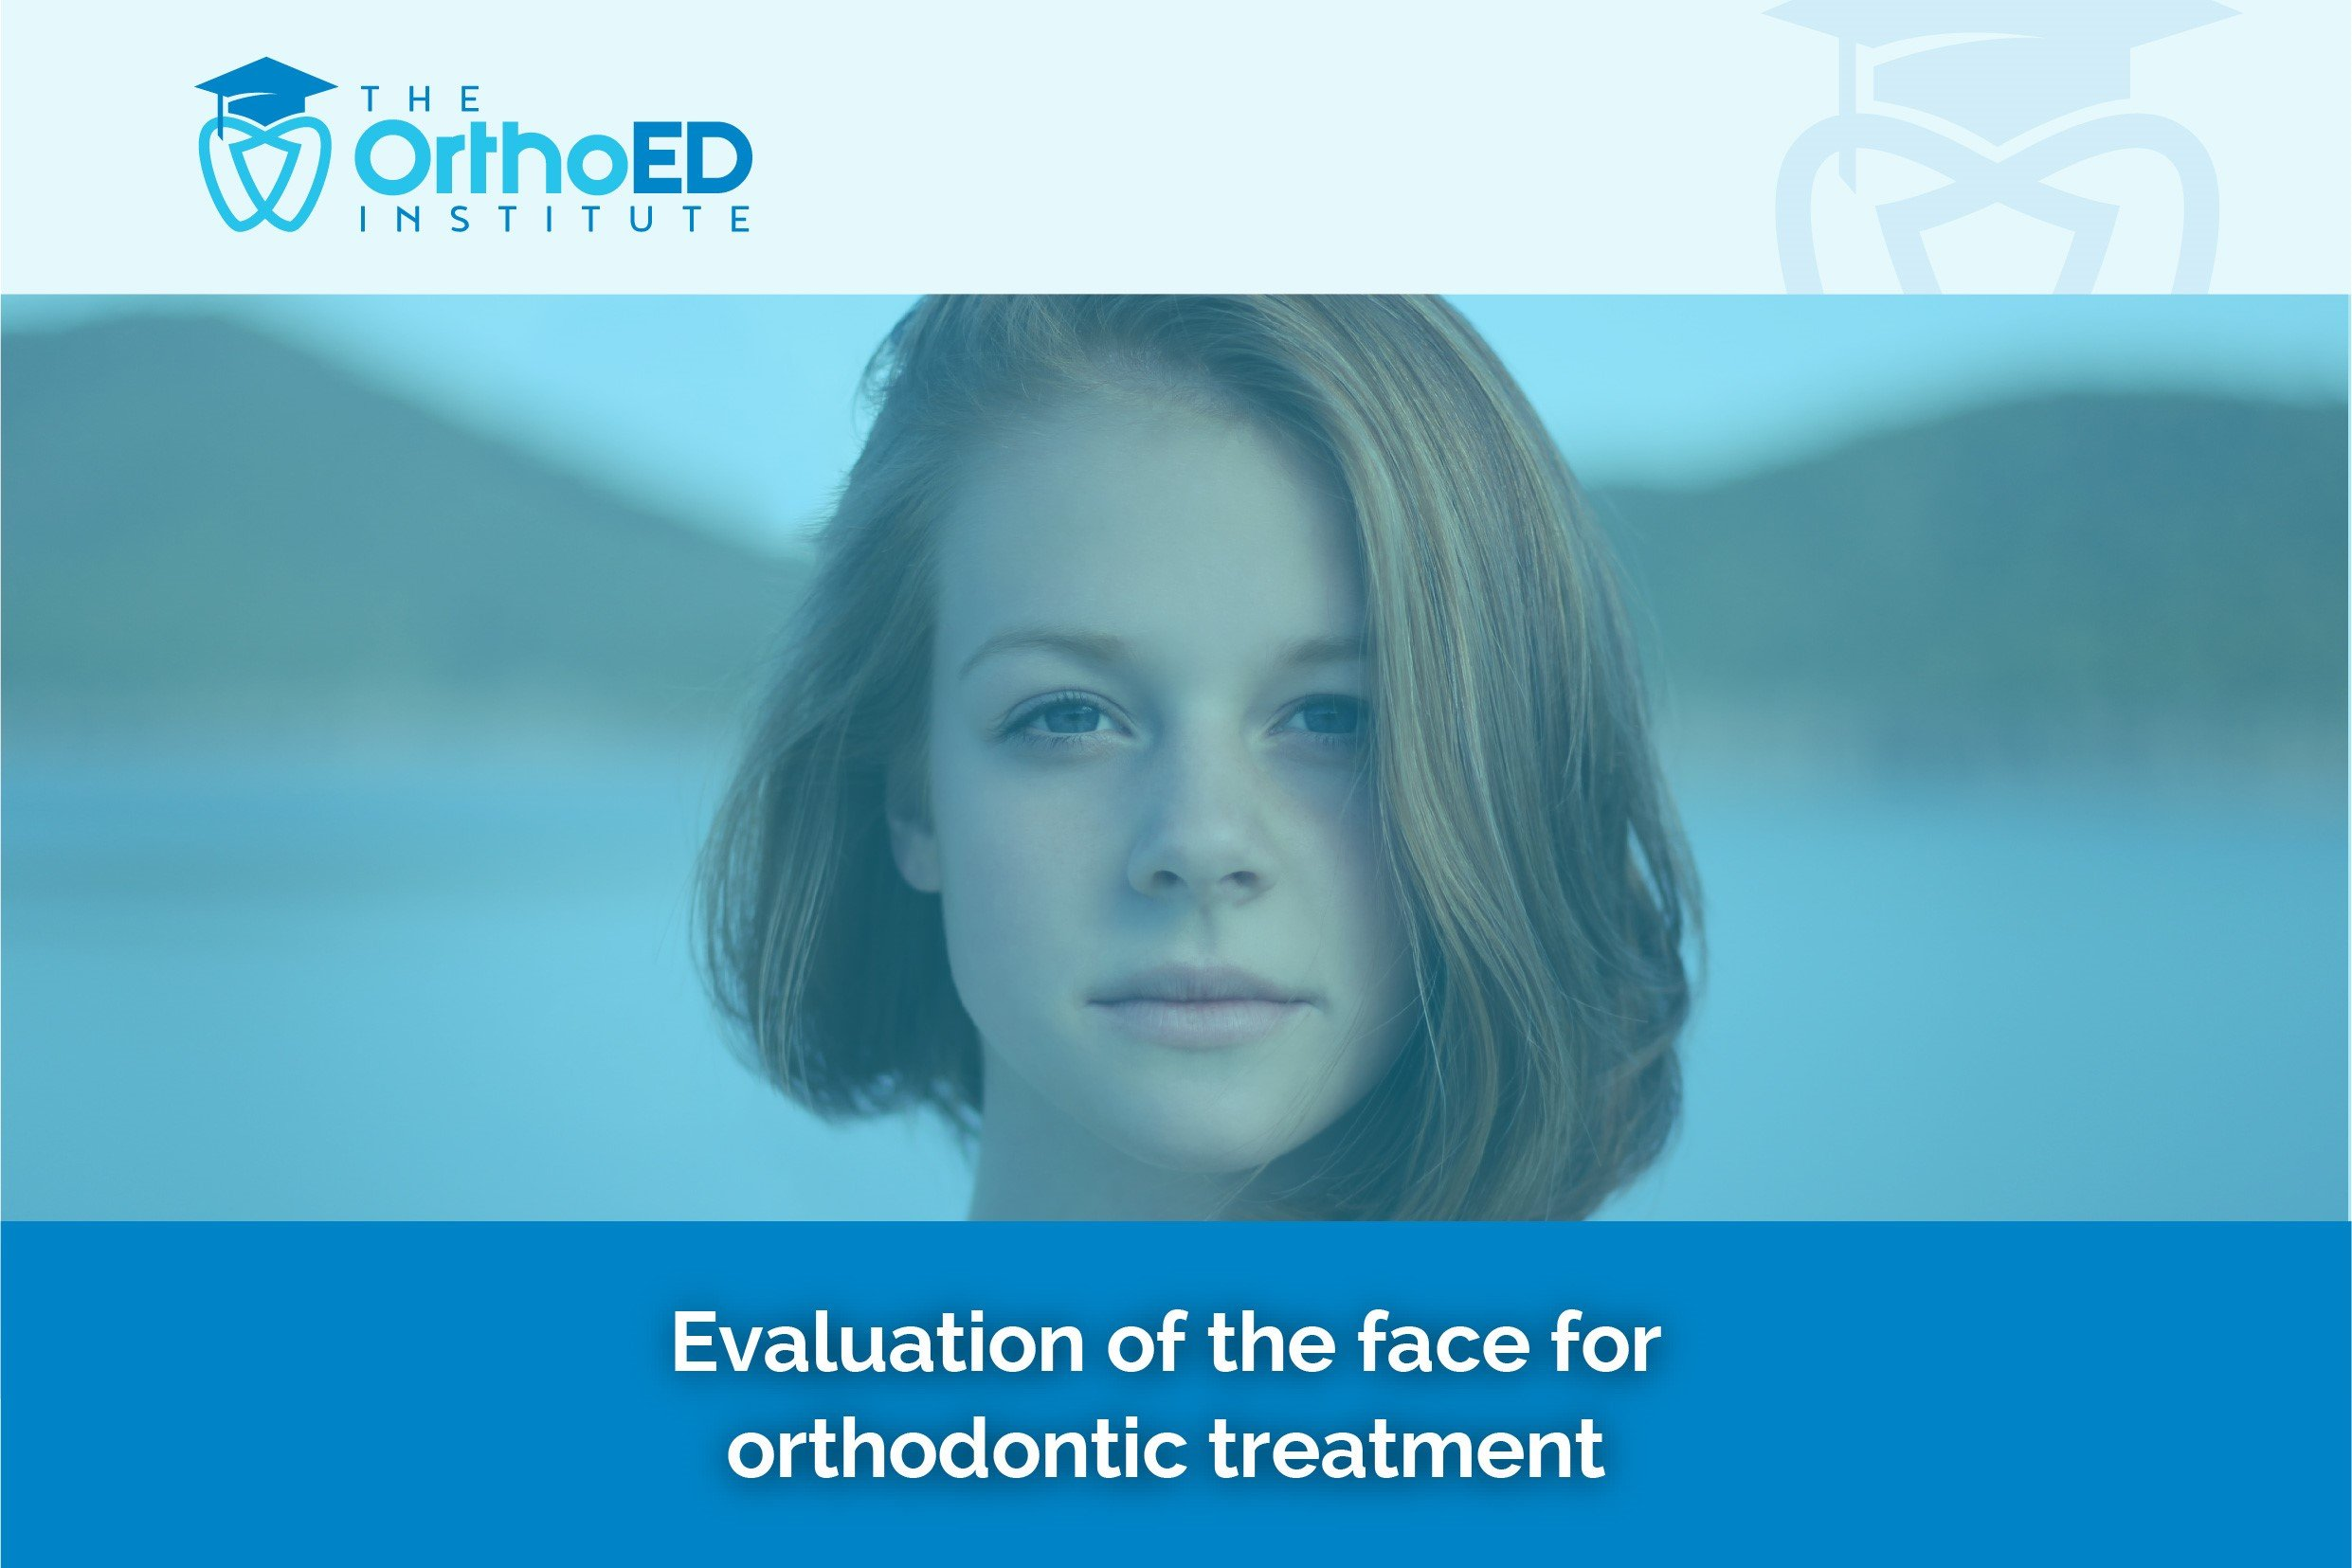 OrthoED - Evaluation of the face